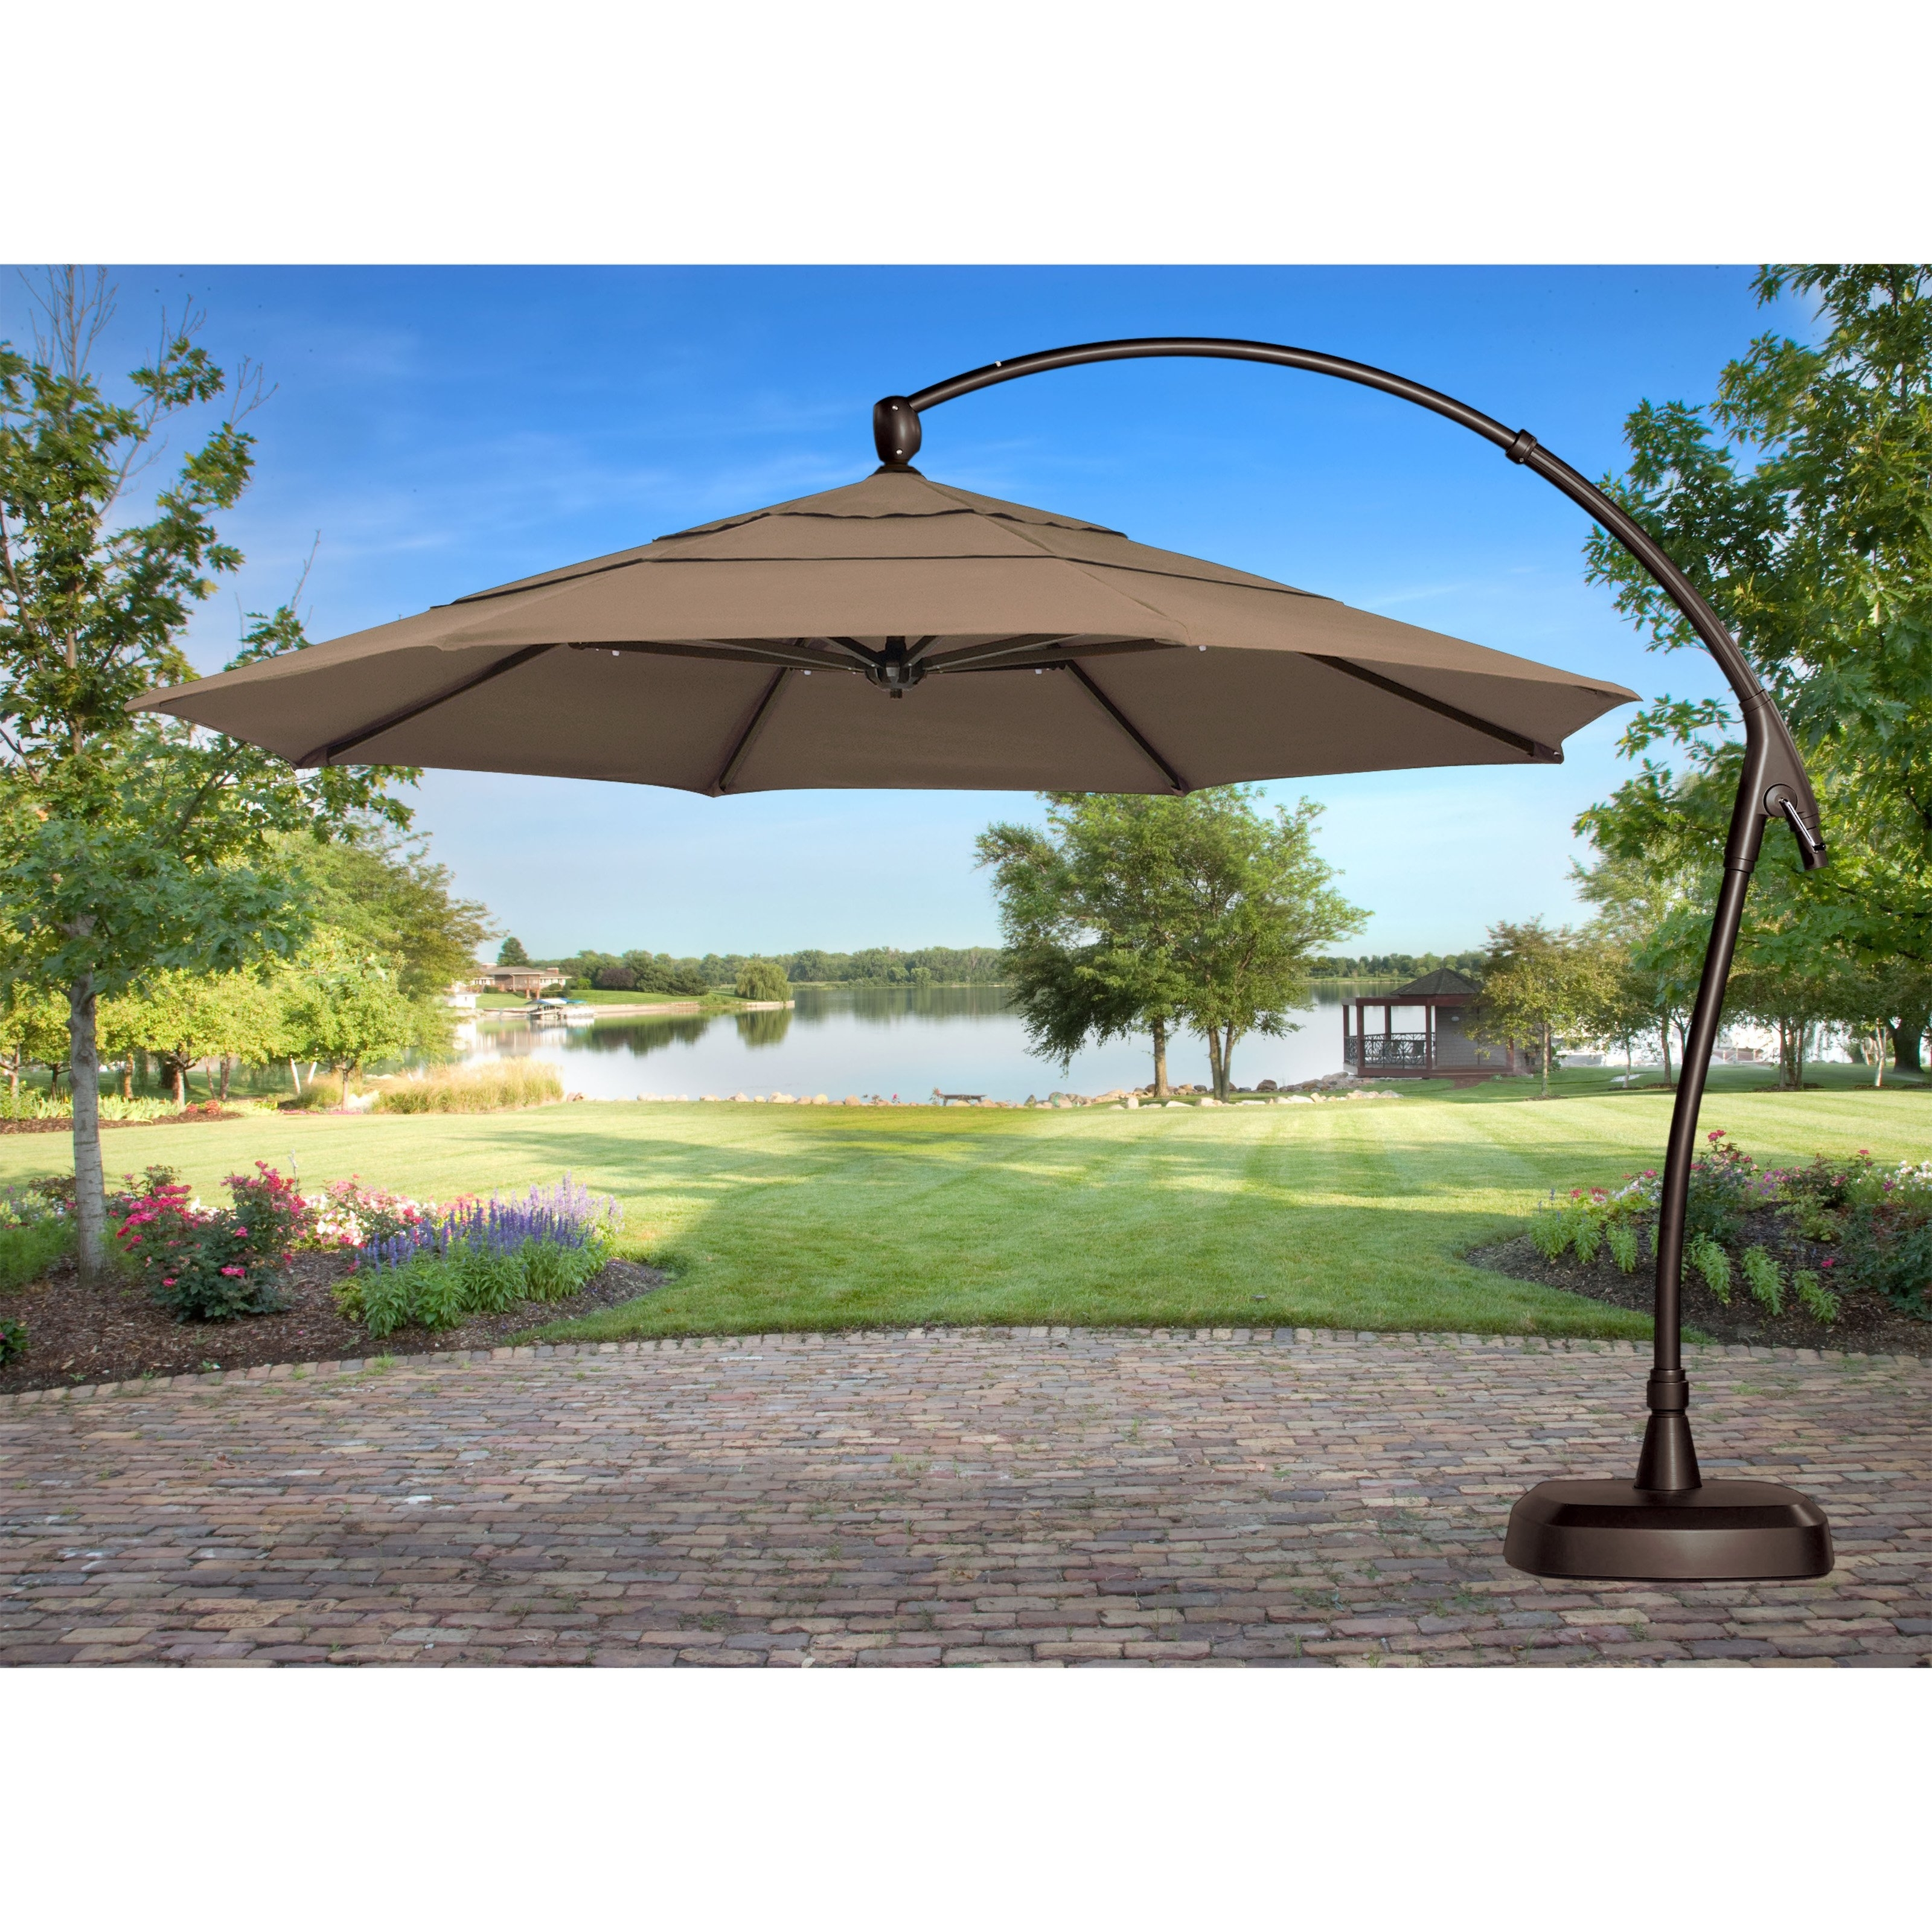 Patio Umbrellas From Costco Inside 2018 Furniture: Costco Cantilever Umbrella For Most Dramatic Shade (View 13 of 20)